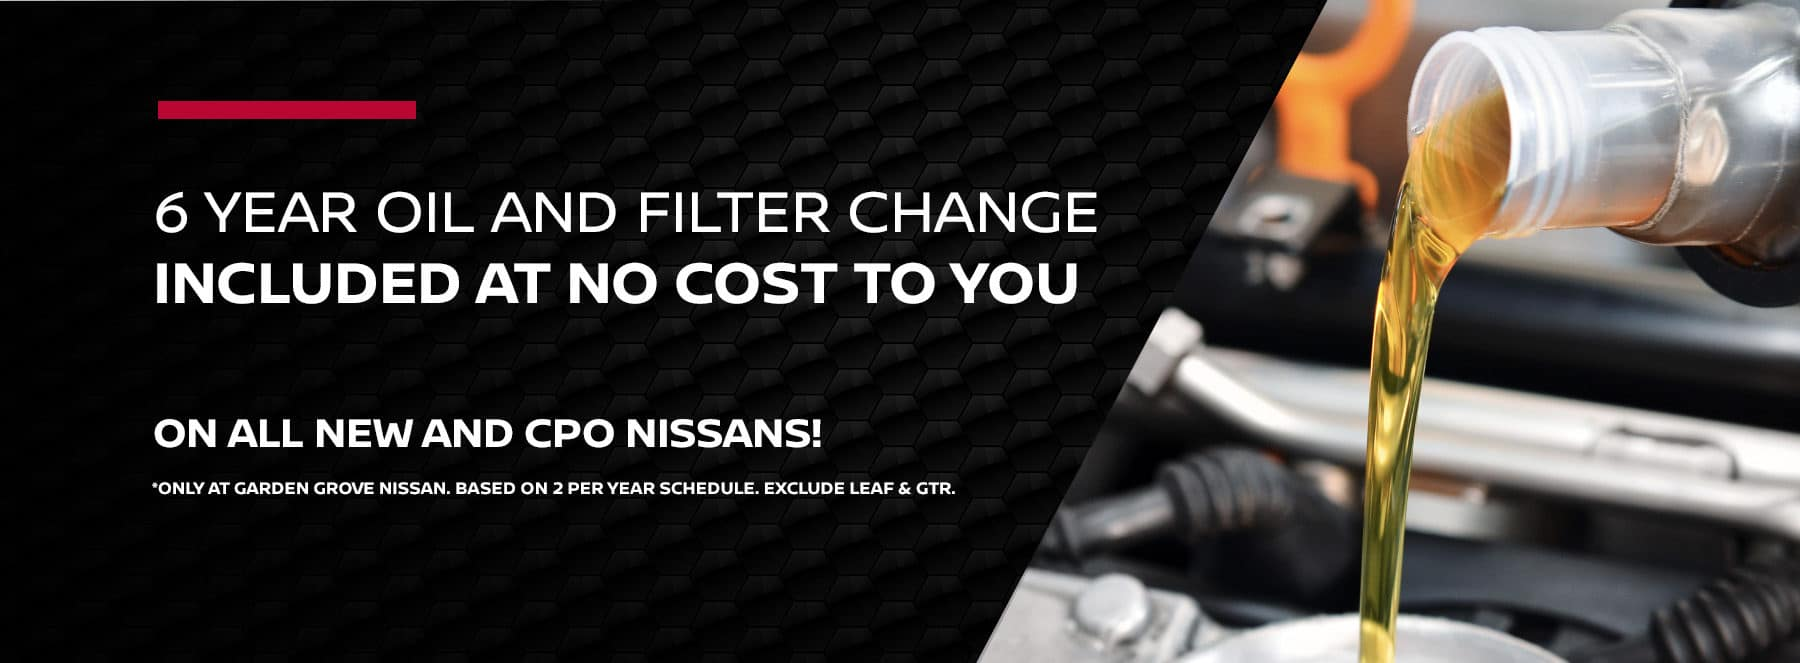 Garden Grove Nissan 6 Year Oil & Filter Change At No Cost